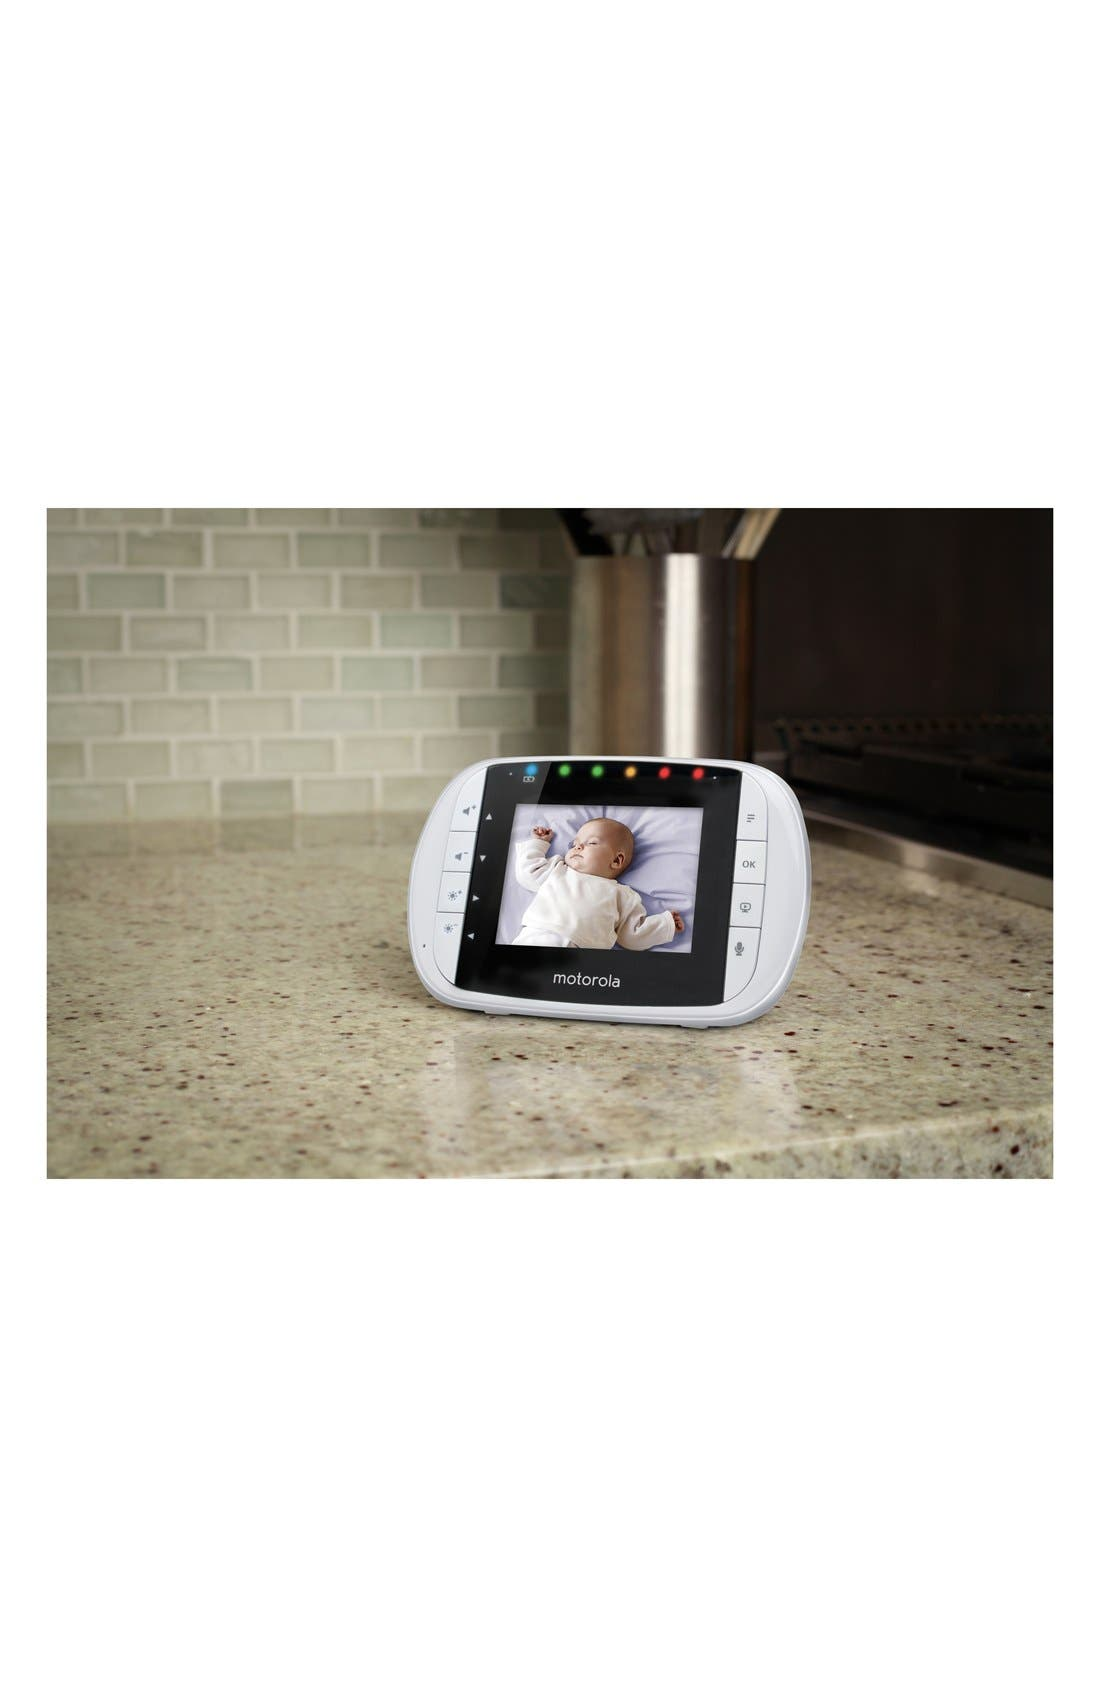 MBP 33S Wireless Digital Video Baby Monitor,                             Alternate thumbnail 3, color,                             WHITE/ SILVER TRIM